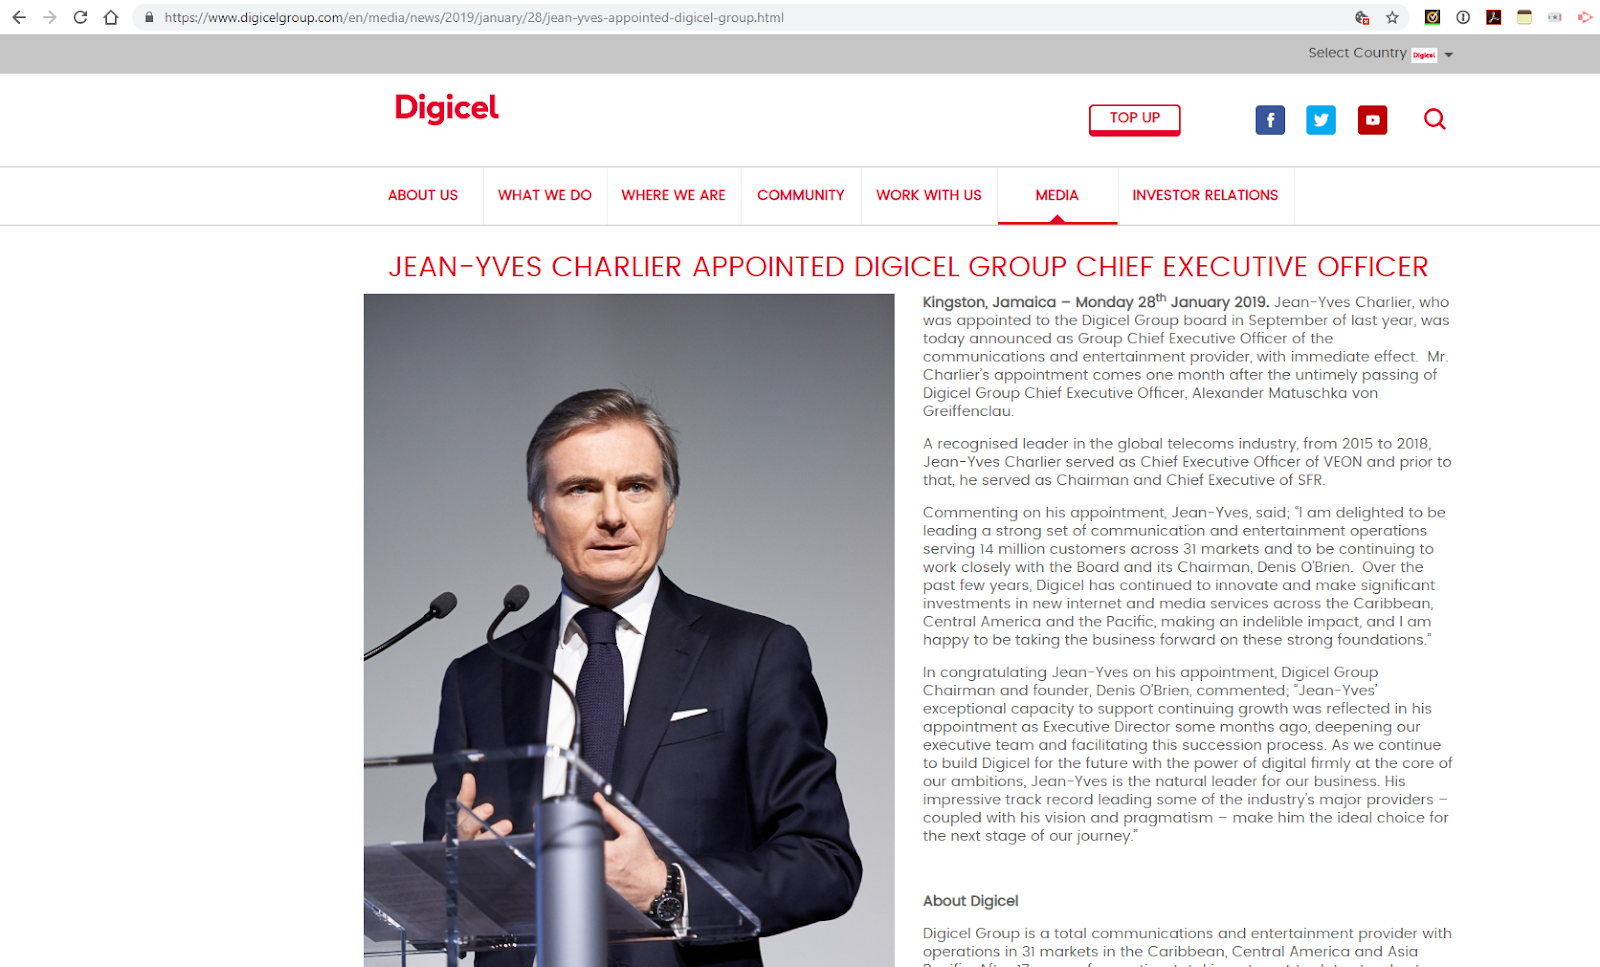 Digicel appoints Jean-Yves Charlier as CEO ~ Converge! Network Digest